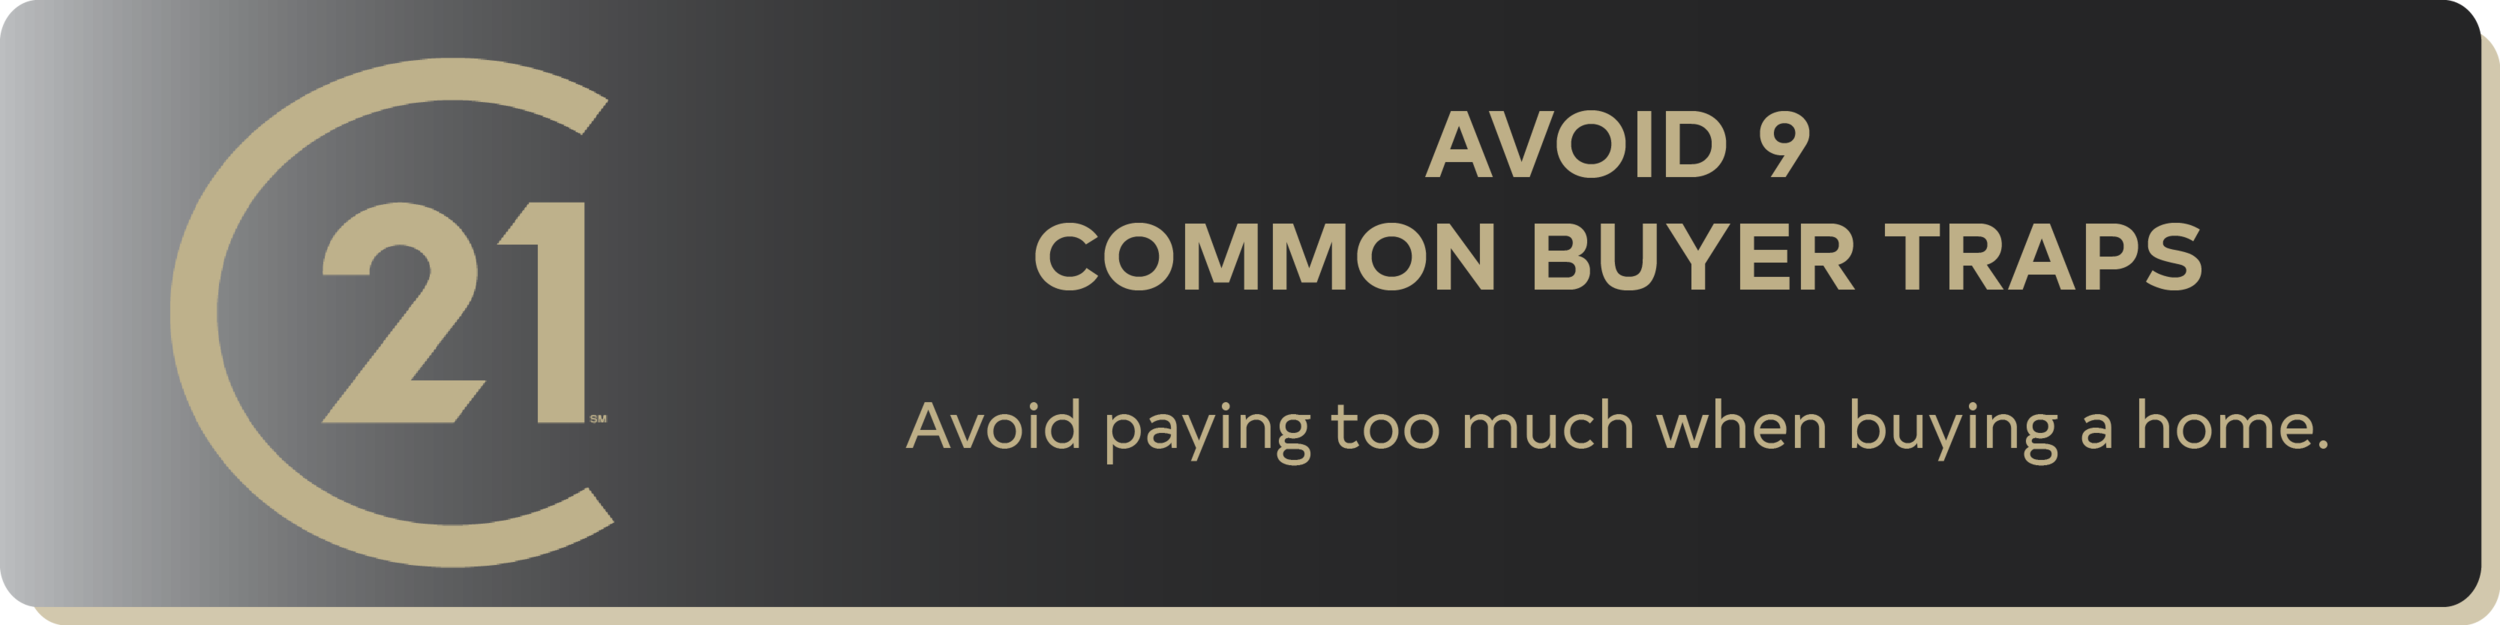 avoid 9 buyer traps.png